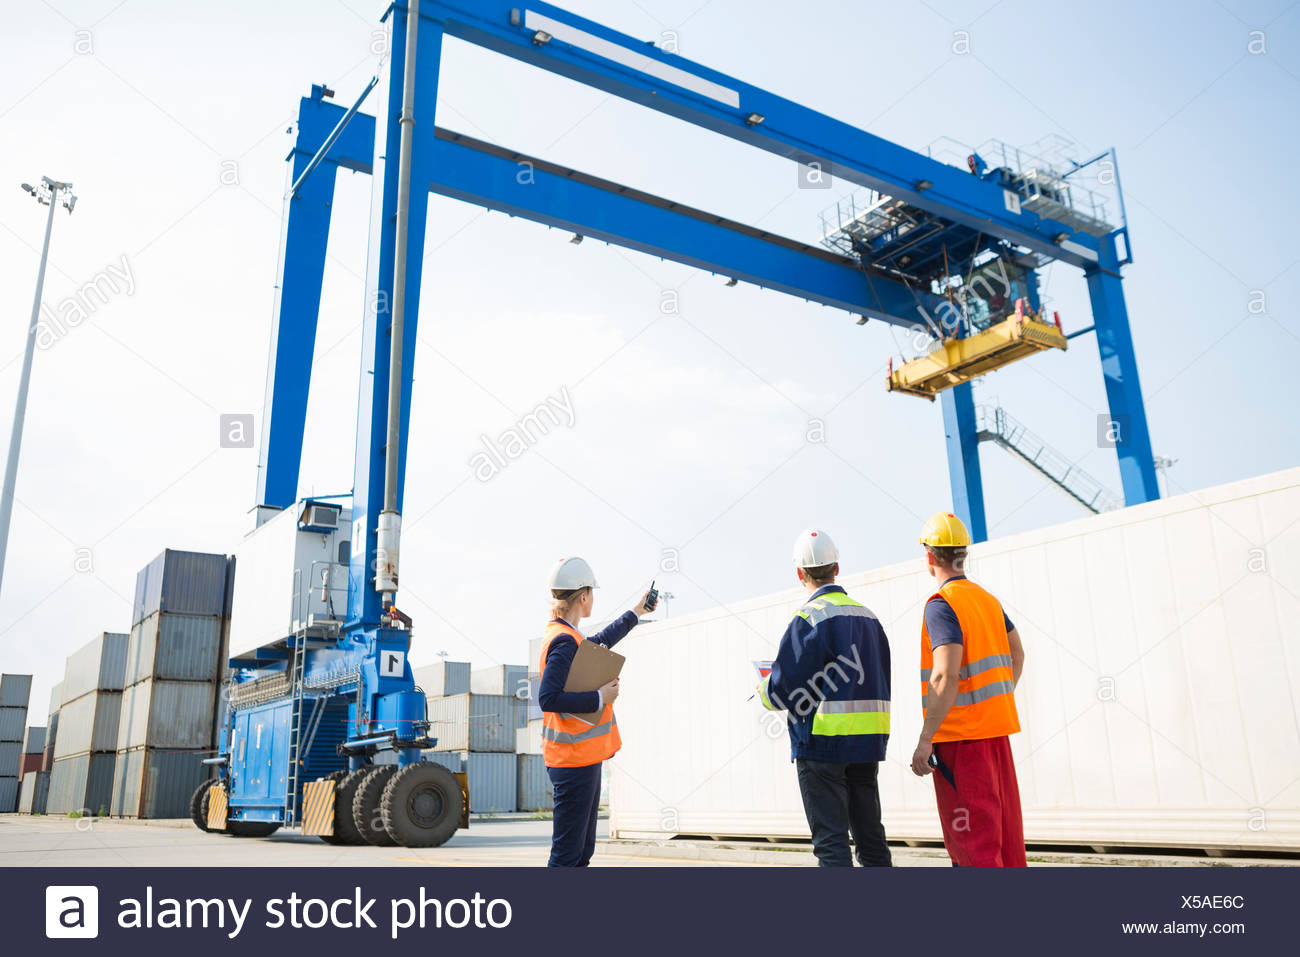 Workers discussing against large crane loading container at shipping yard - Stock Image